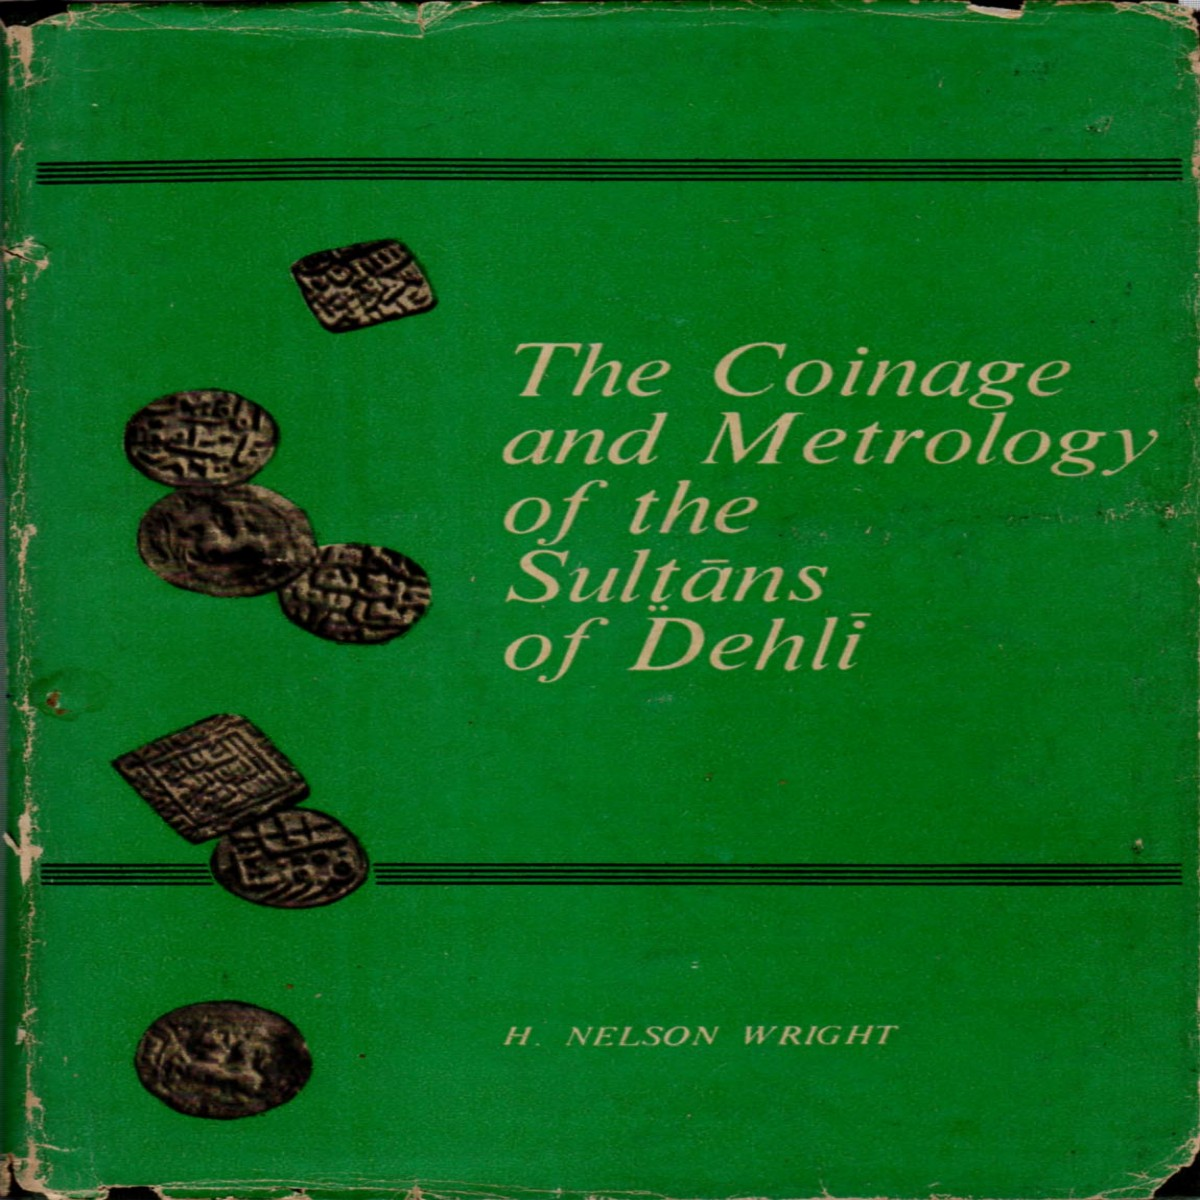 The Coinage and Metrology of the Sultans of Delhi